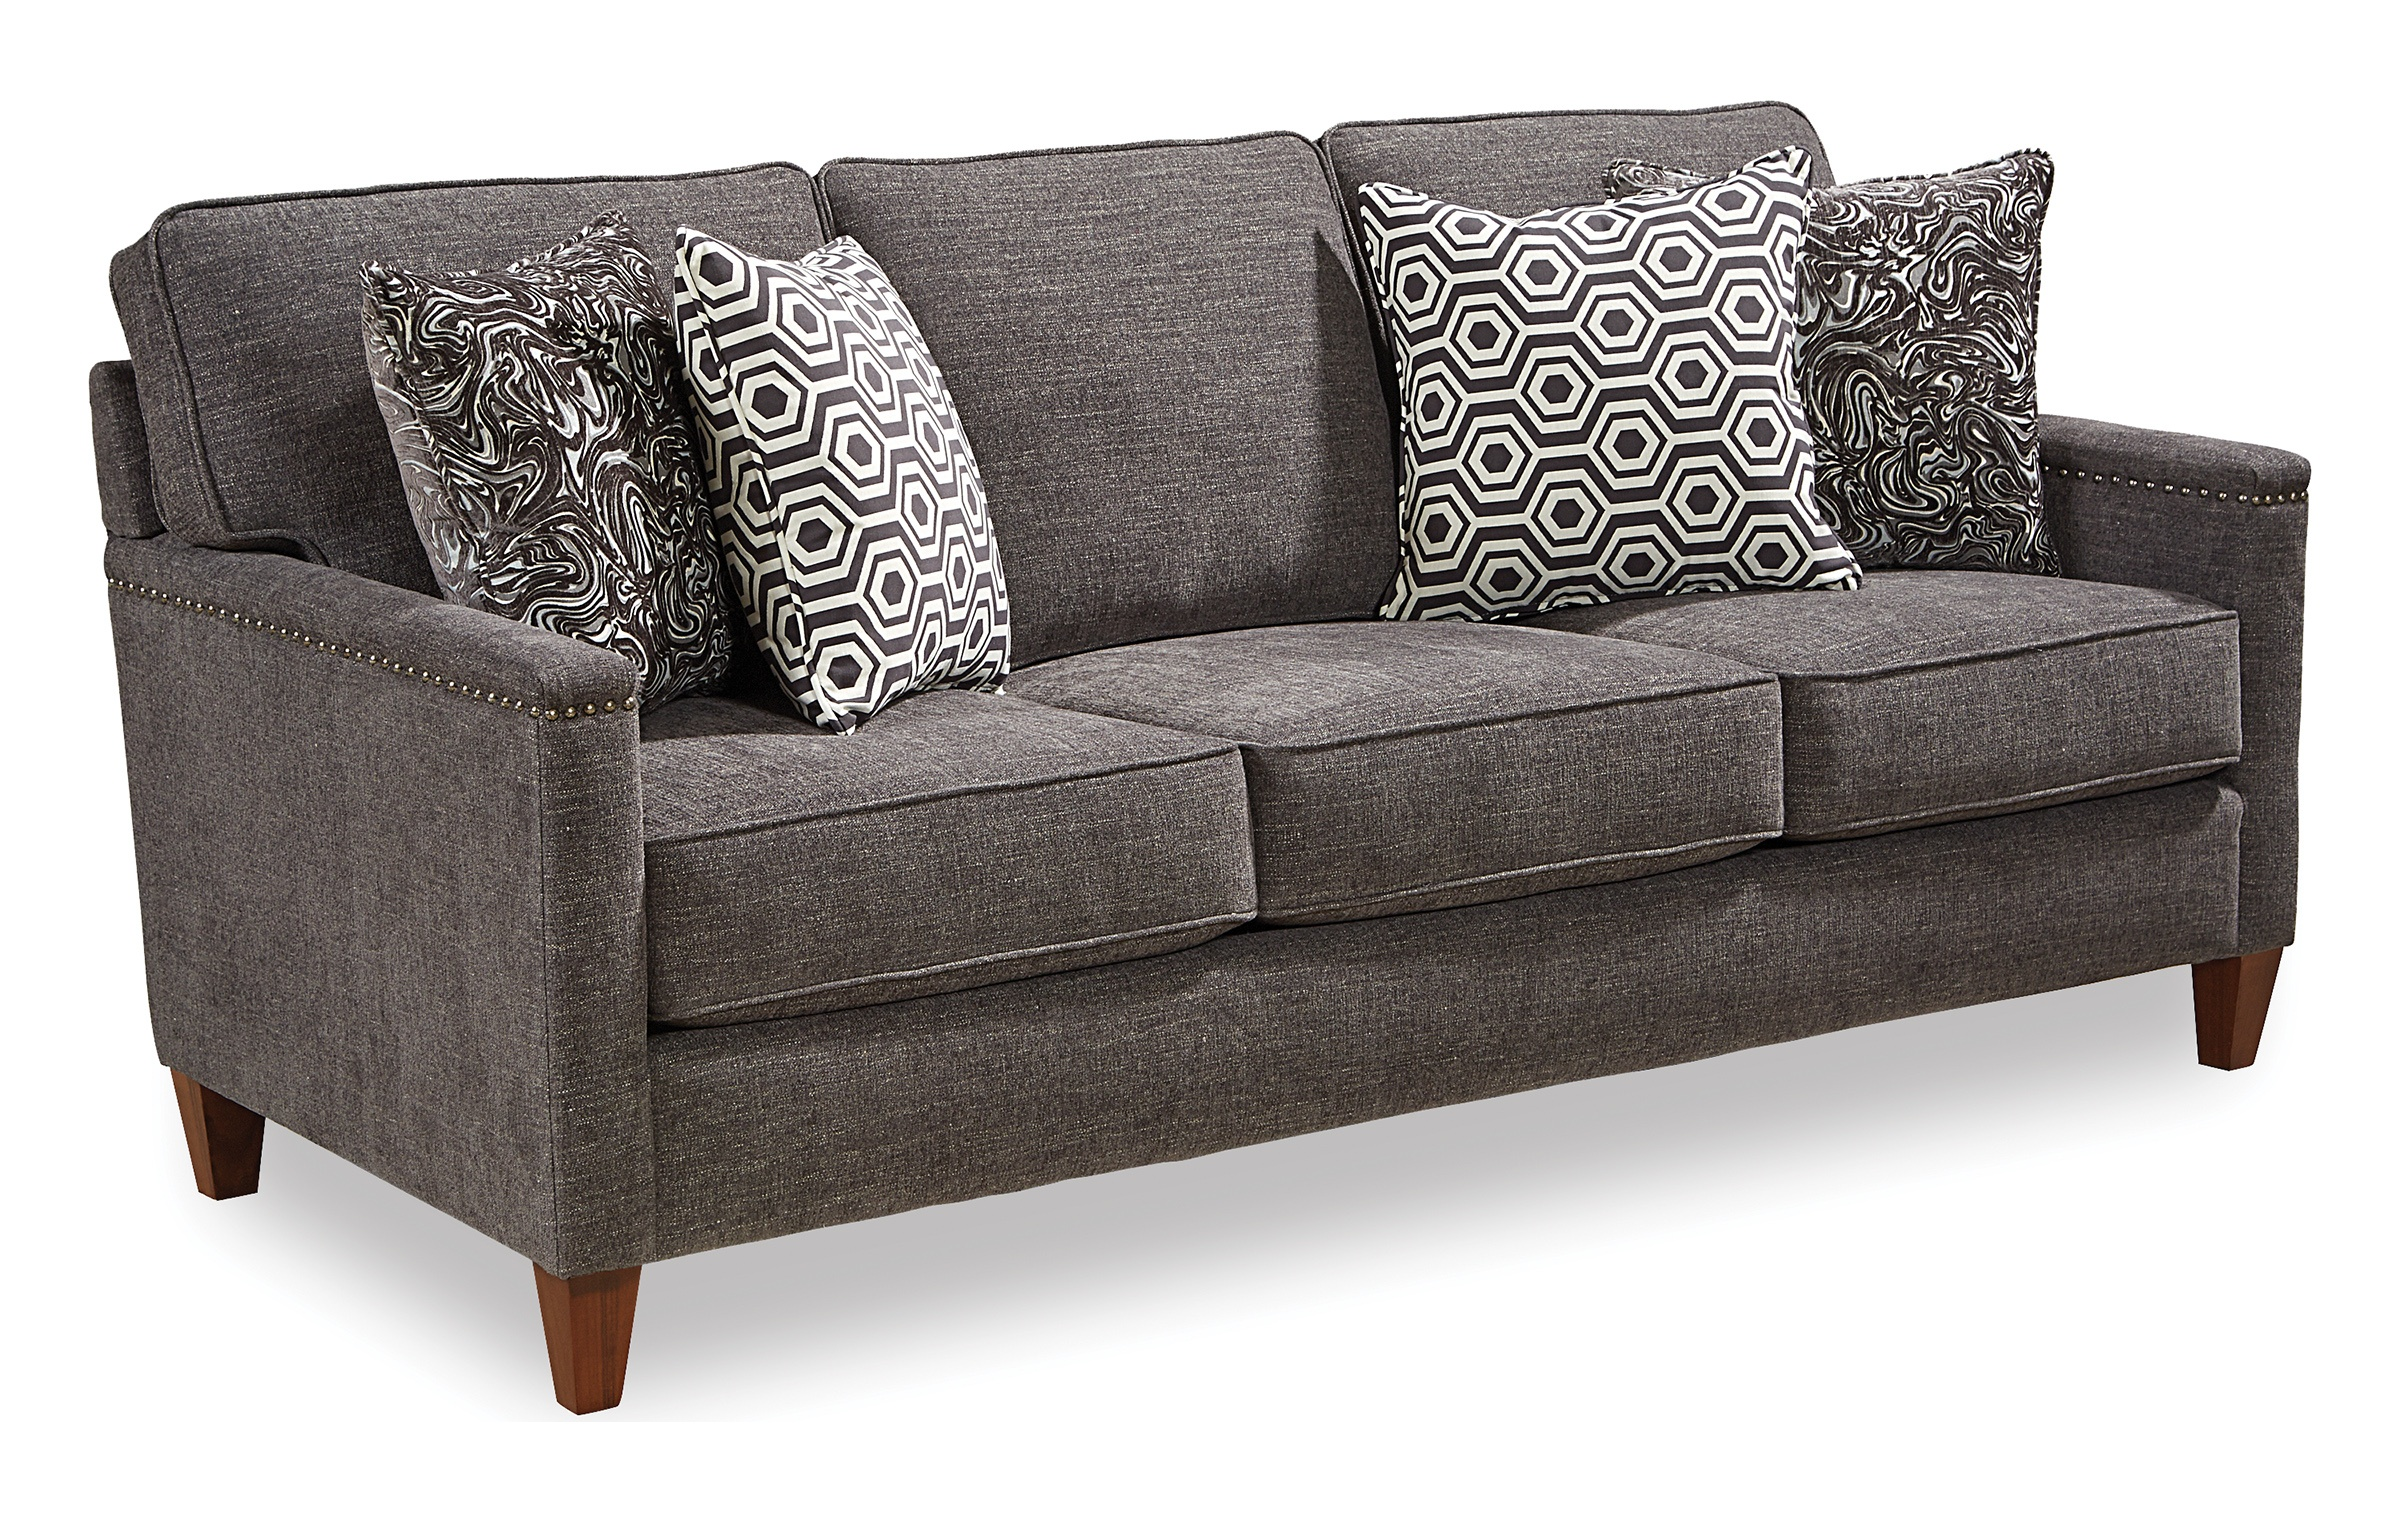 Lawson 4254 Sofa Collection - IN STOCK FREE | Sofas and Sectionals